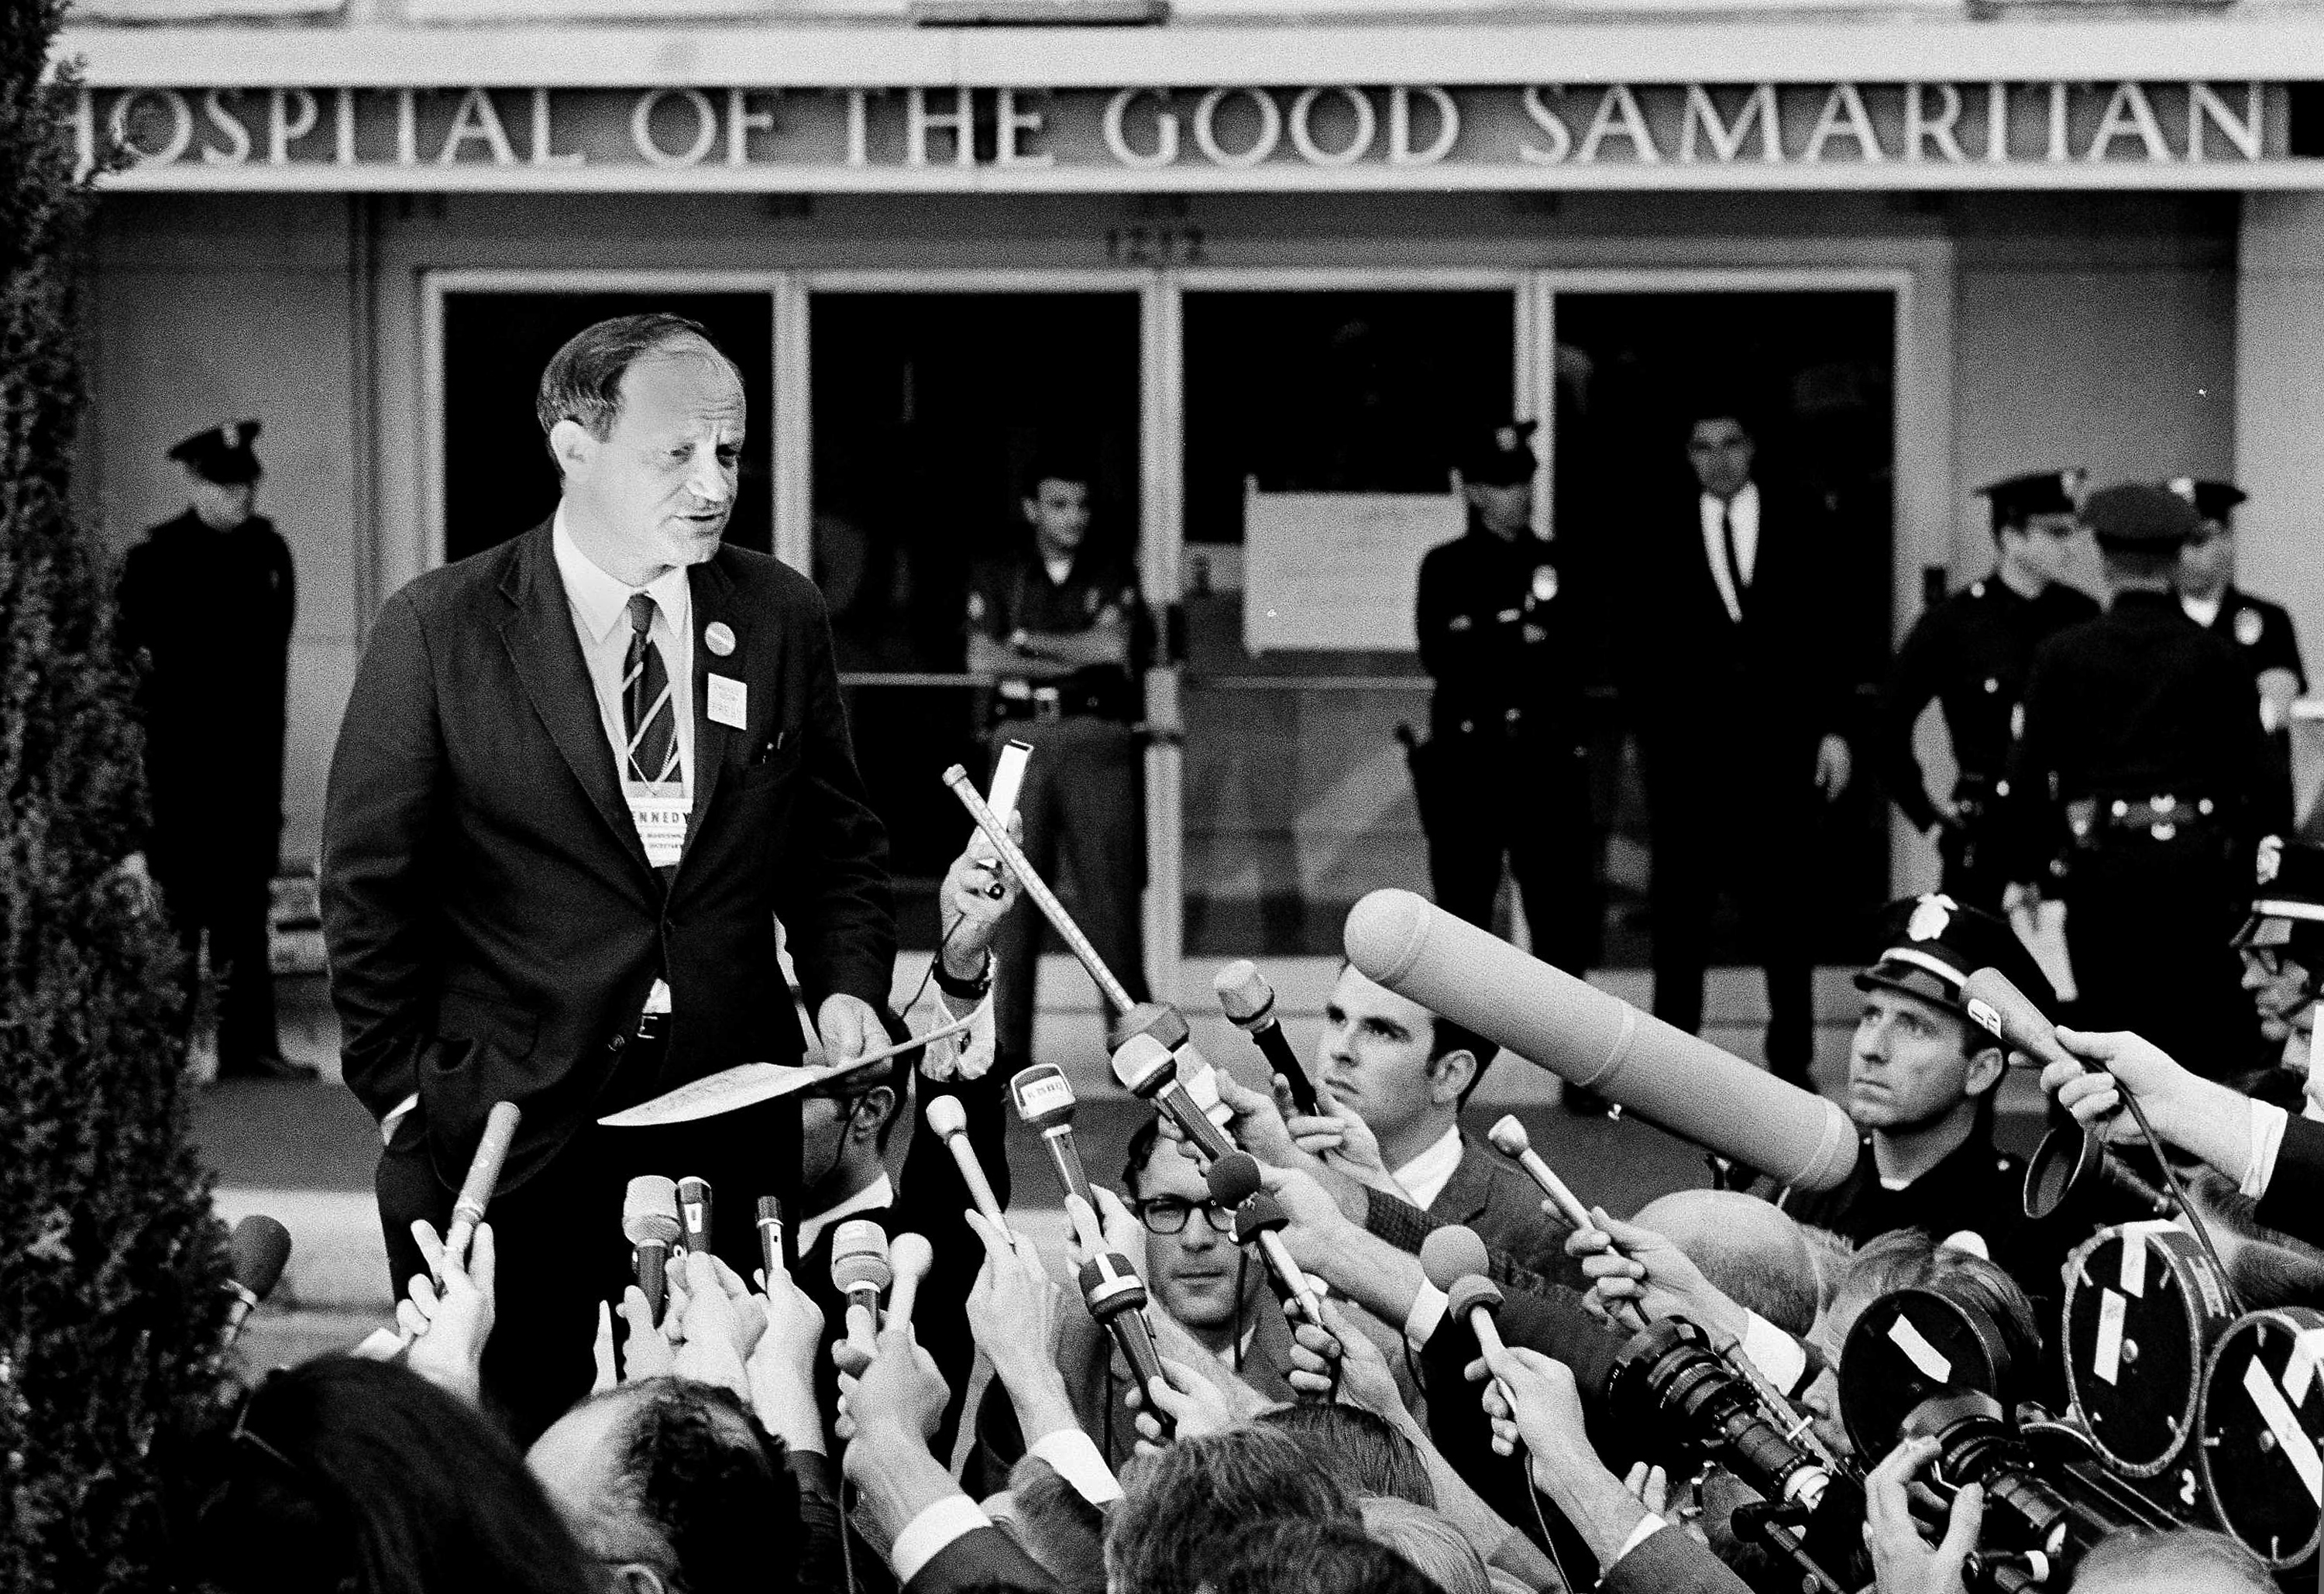 """FILE - In this June 5, 1968 file photo, Frank Mankiewicz, Sen. Robert F. Kennedy's press secretary, tells a news conference outside Good Samaritan hospital in Los Angeles that Kennedy emerged from three hours of surgery in """"extremely critical condition."""" Kennedy died later that day. Associated Press Hollywood reporter Bob Thomas was on a one-night political assignment covering Kennedy's victory celebration in the California presidential primary at the Ambassador Hotel when mayhem unfolded before his eyes. (AP Photo, File)"""